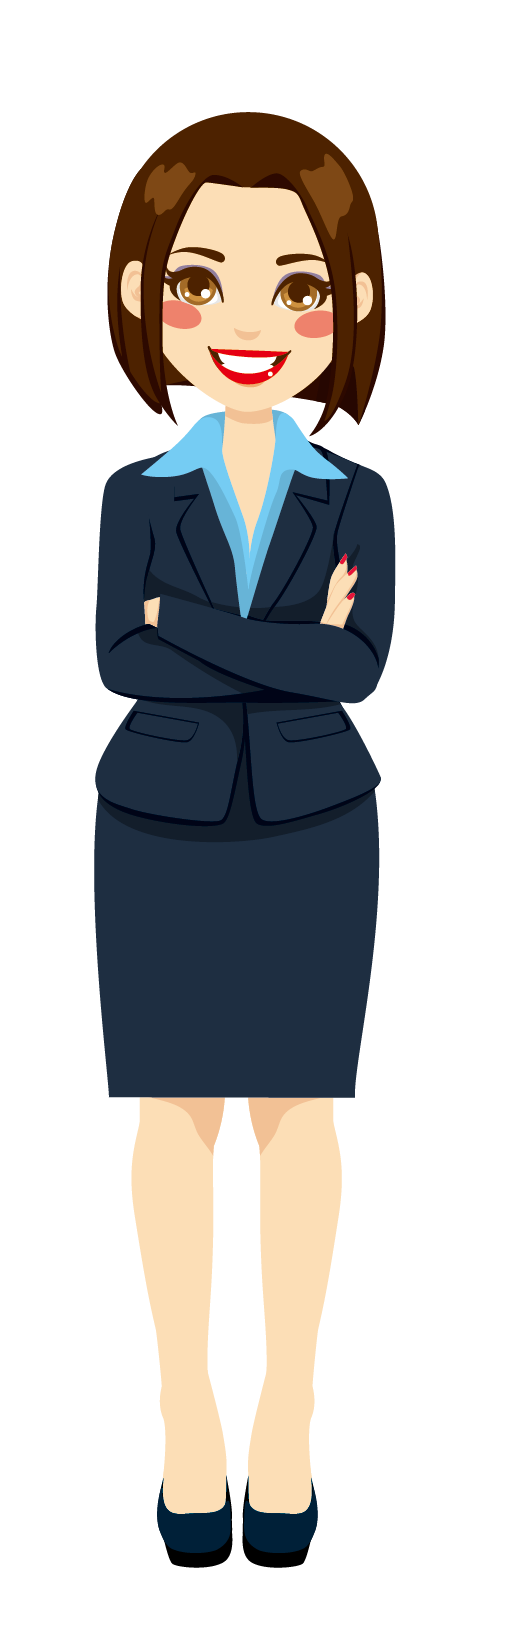 Business casual Dress code Clothing Smart casual, dress transparent  background PNG clipart   HiClipart